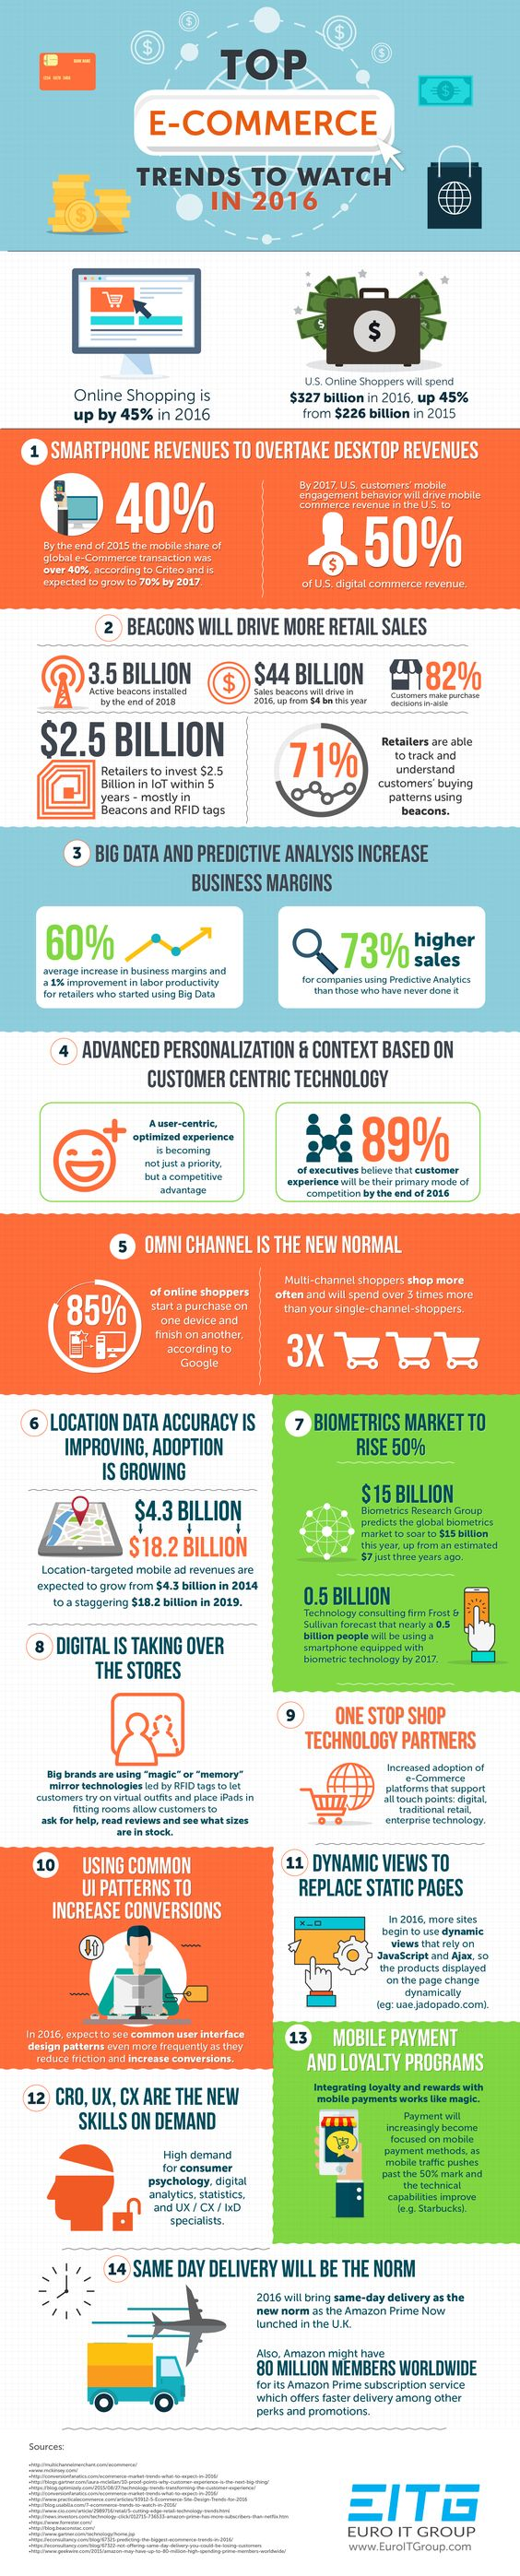 Top E-Commerce Trends to Watch in 2016 #infographic